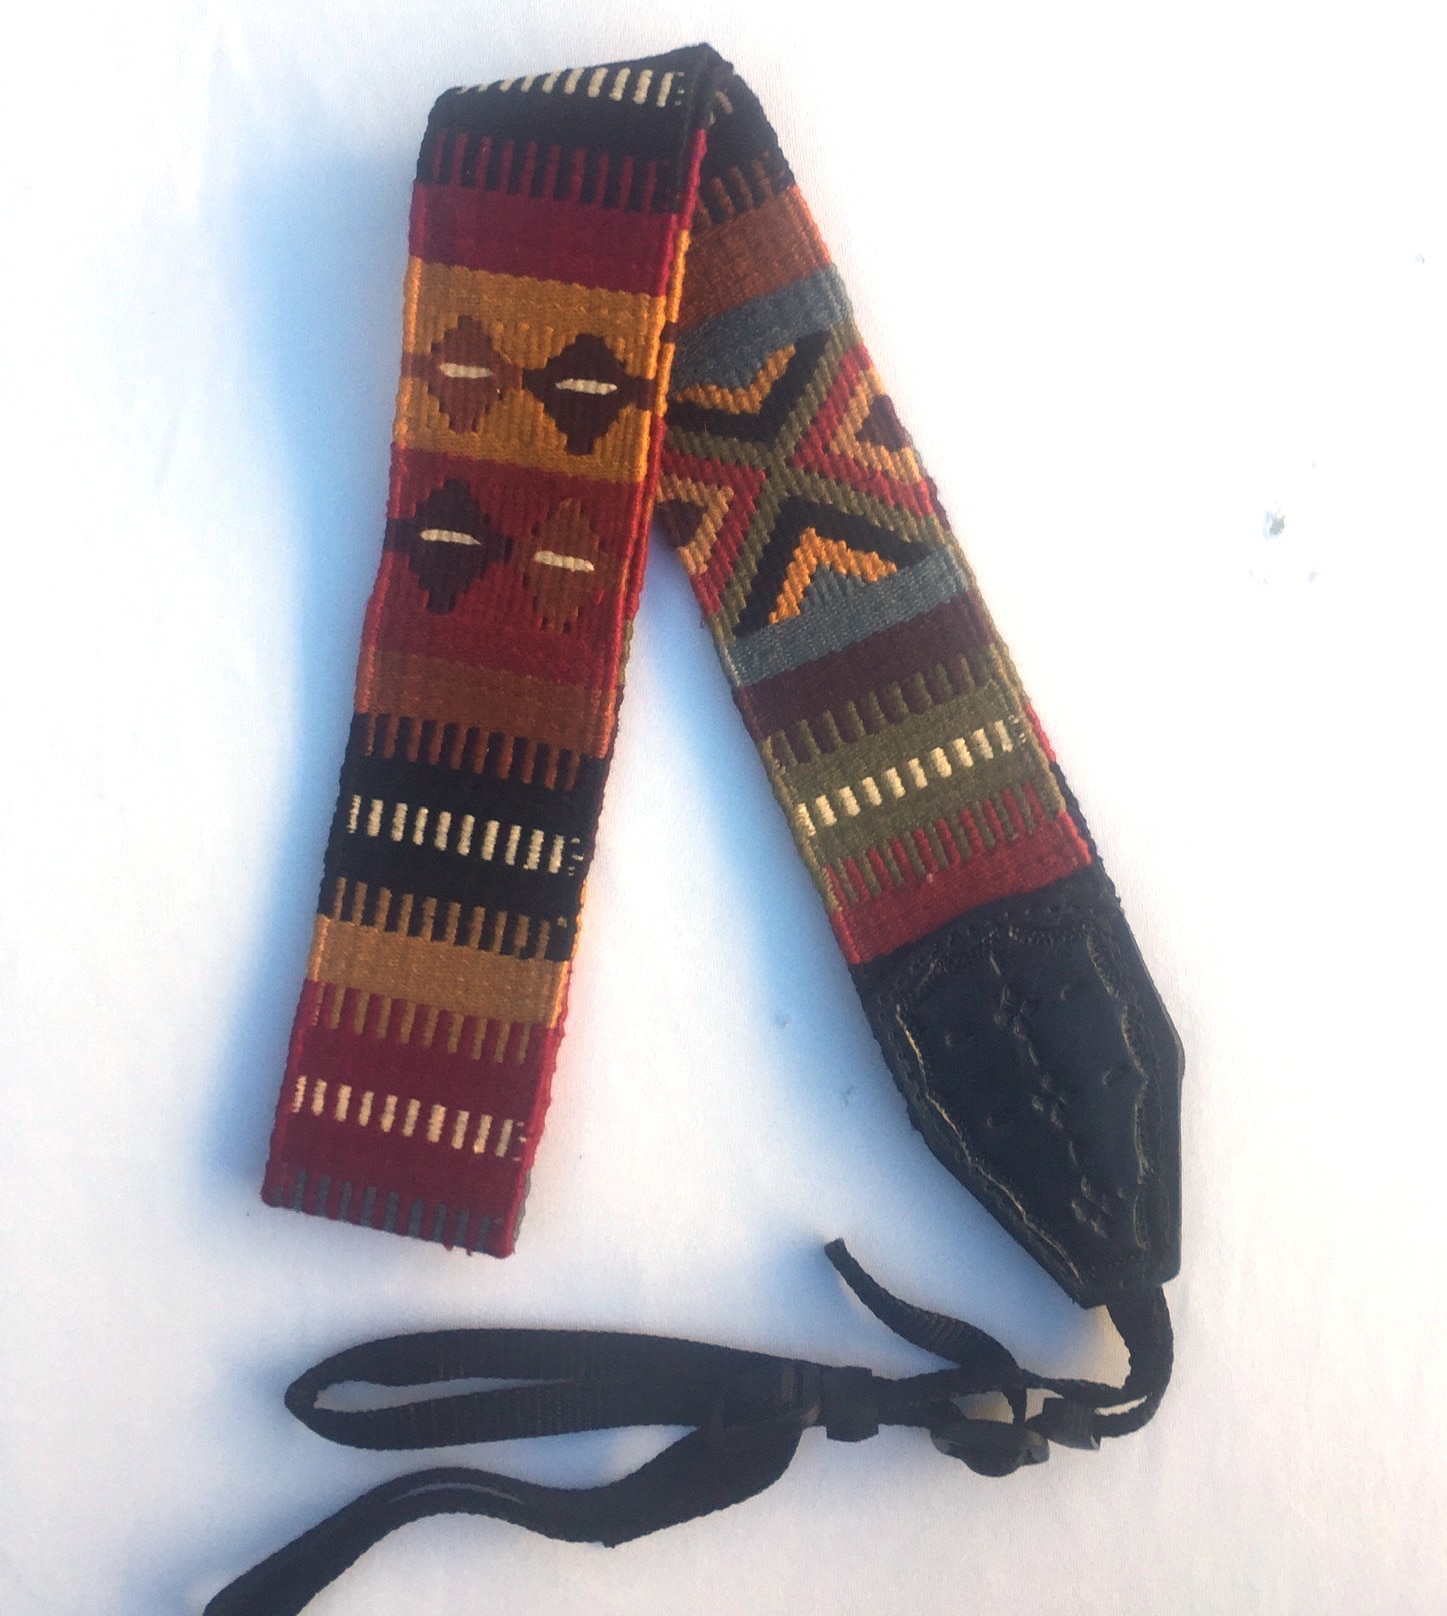 Handwoven Cotton and Leather Camera Strap - Autumn with Geometric Patterns